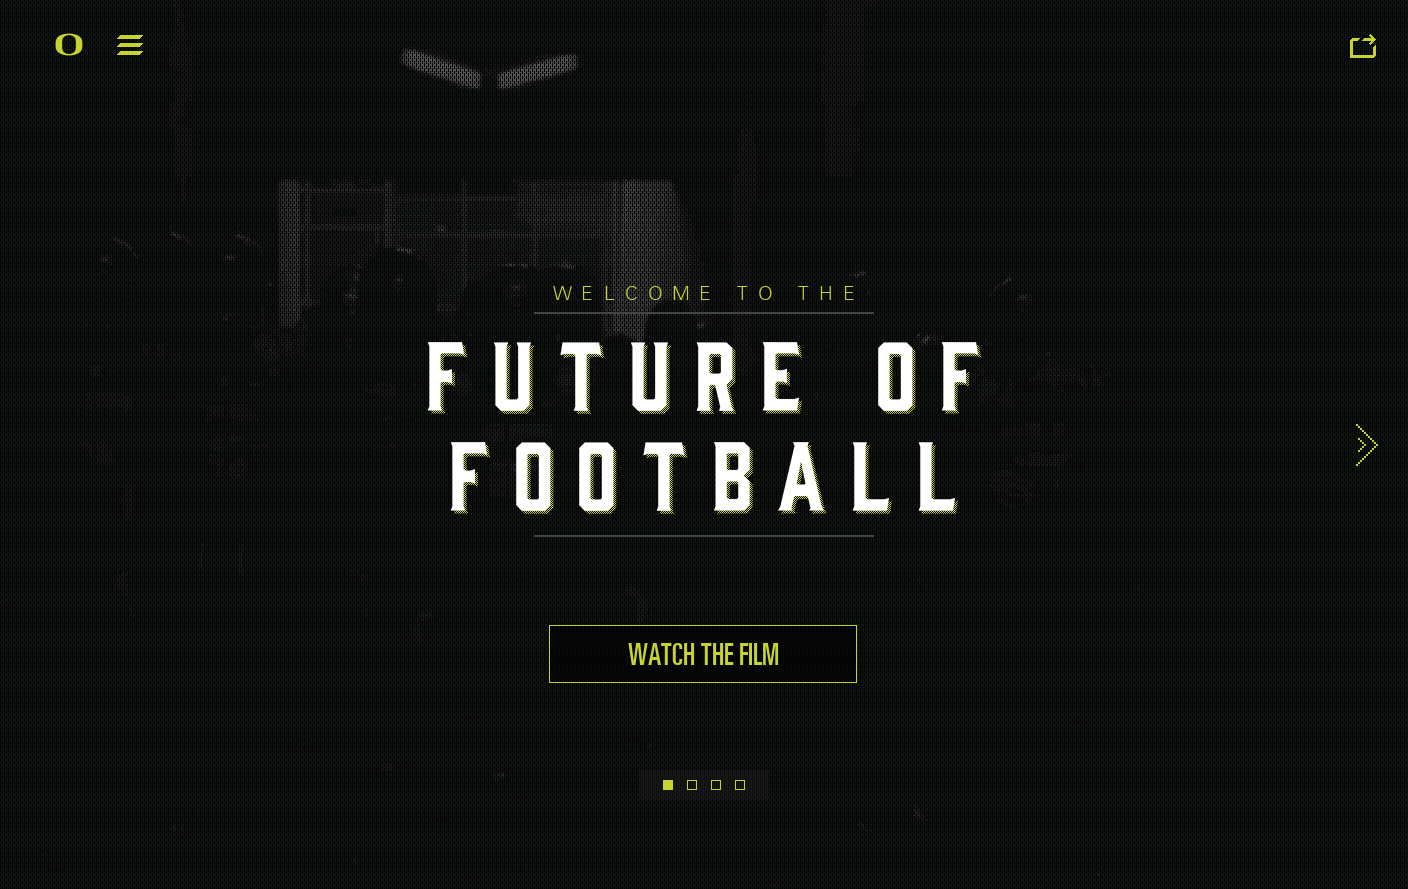 Welcome to the Future of Football